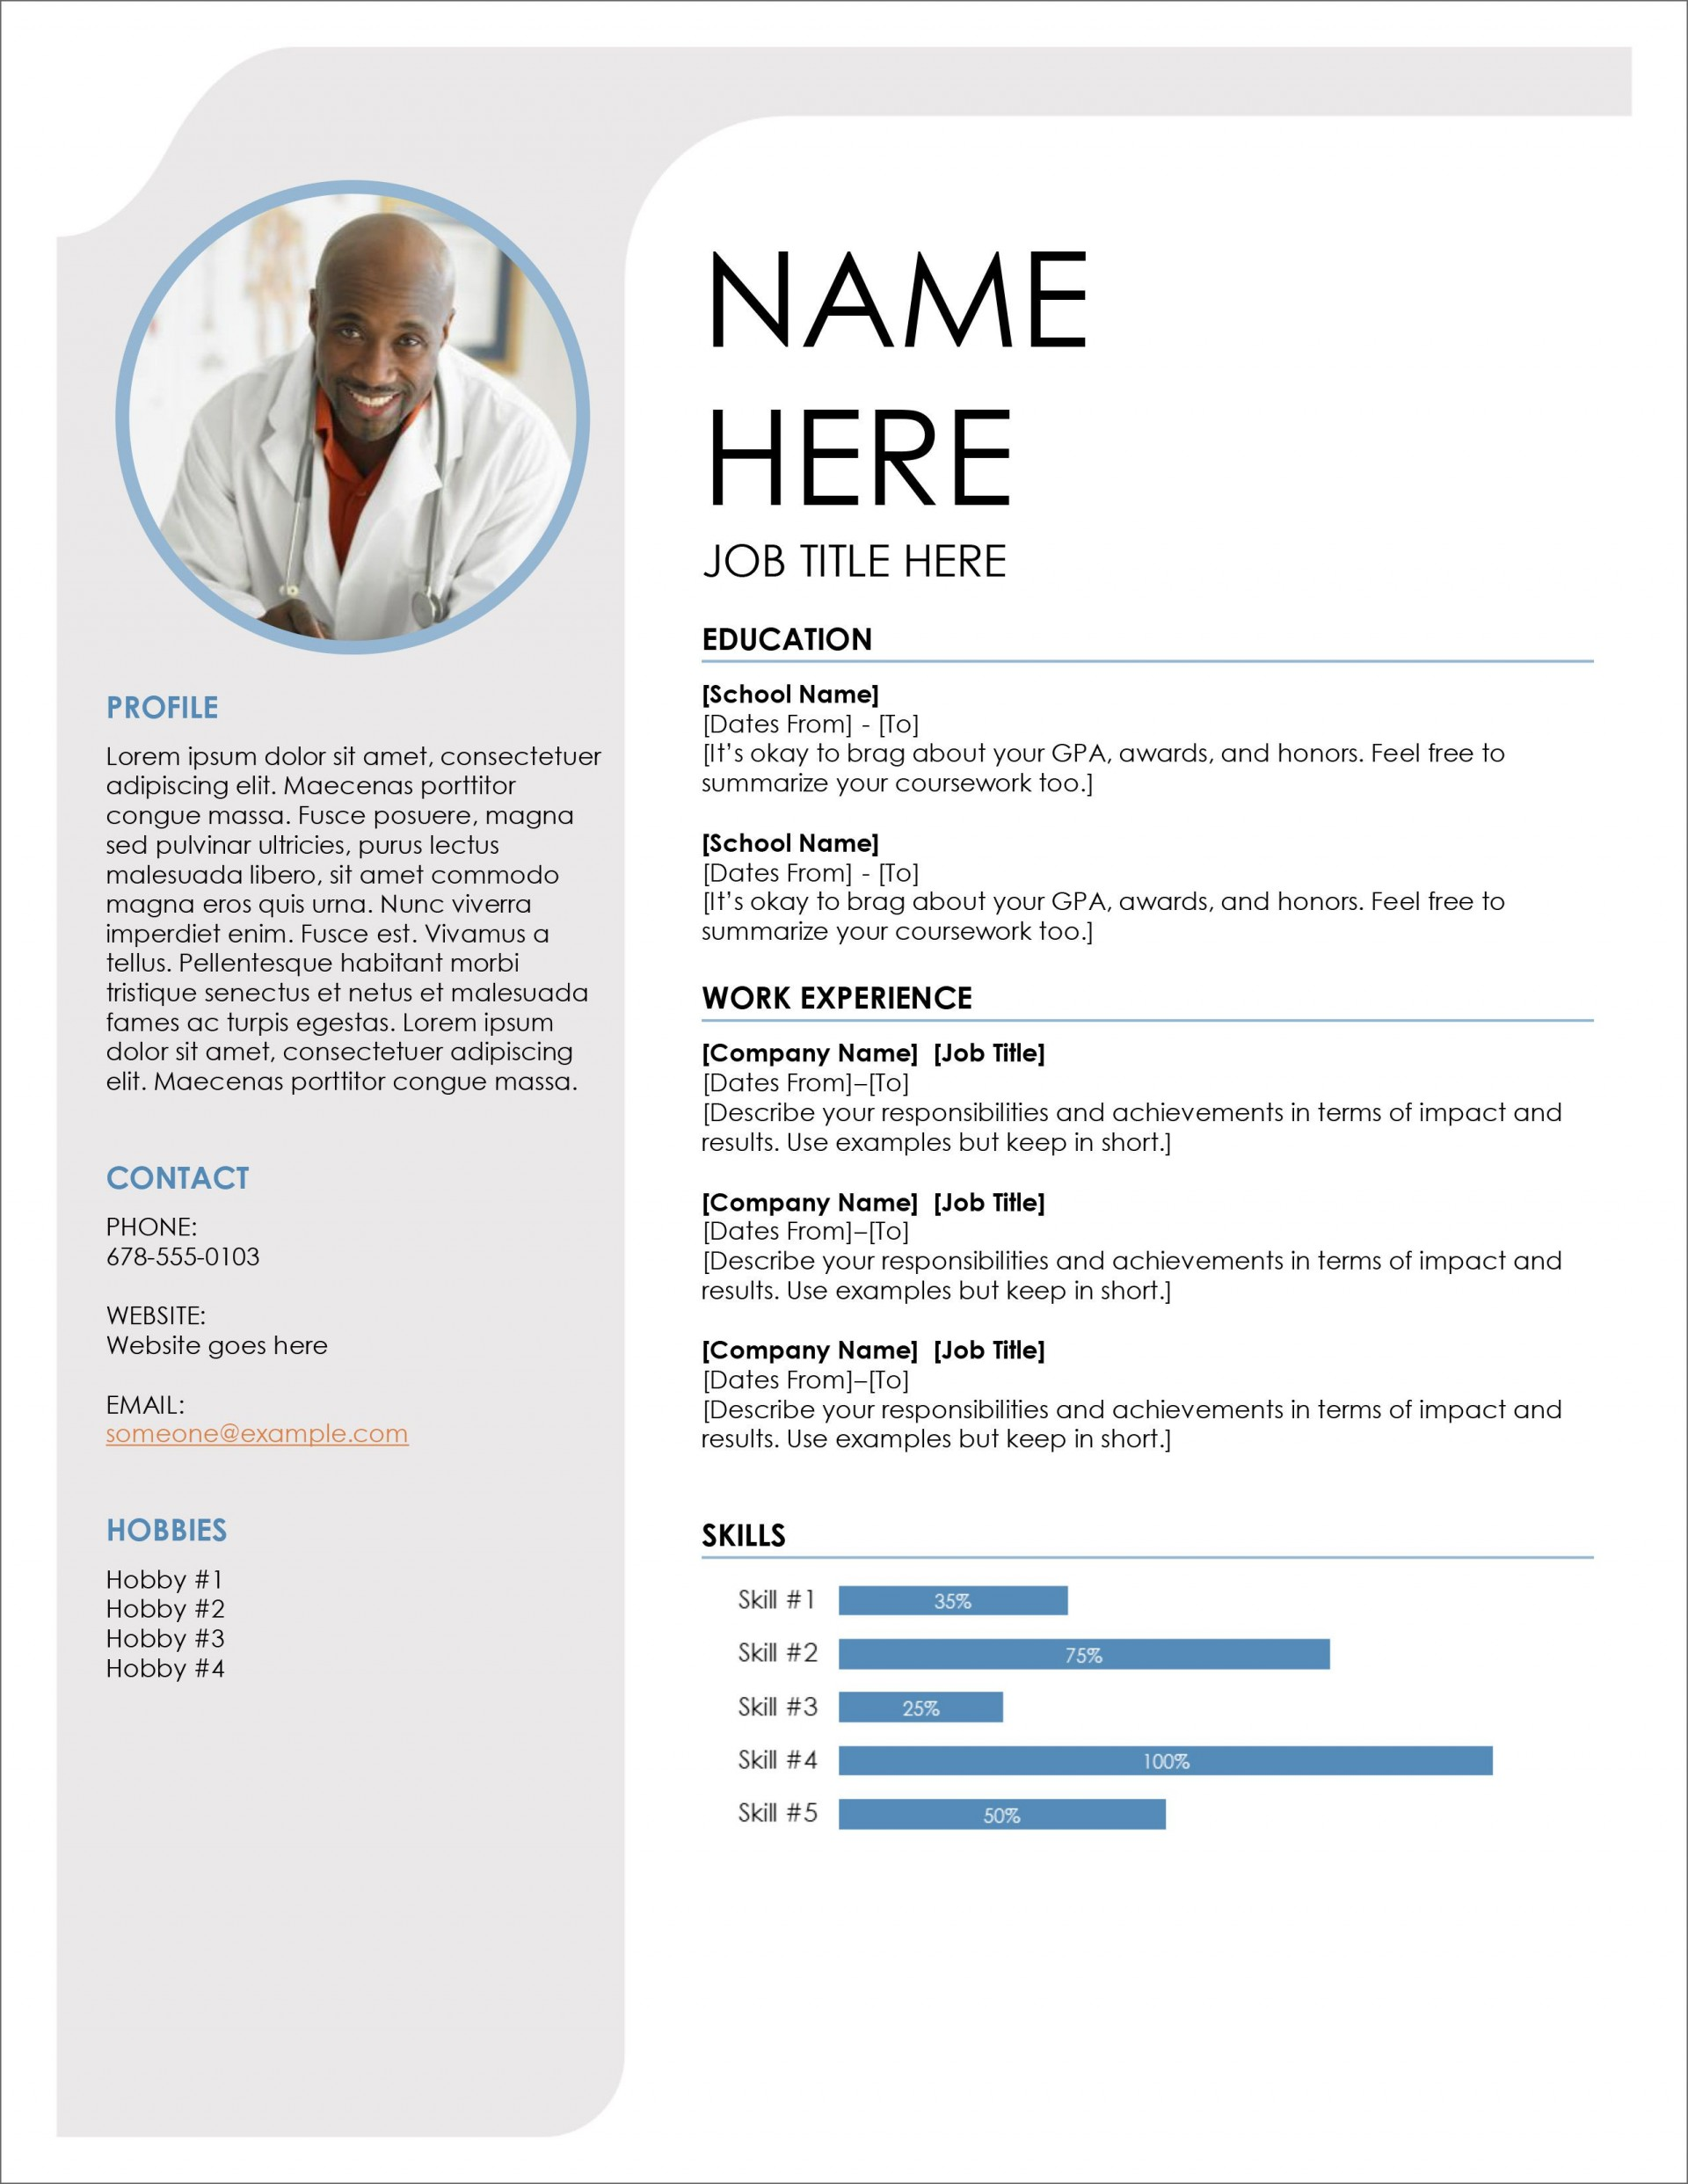 007 Awful Resume Template Download Free Photo  Word 2018 Page Pdf1920